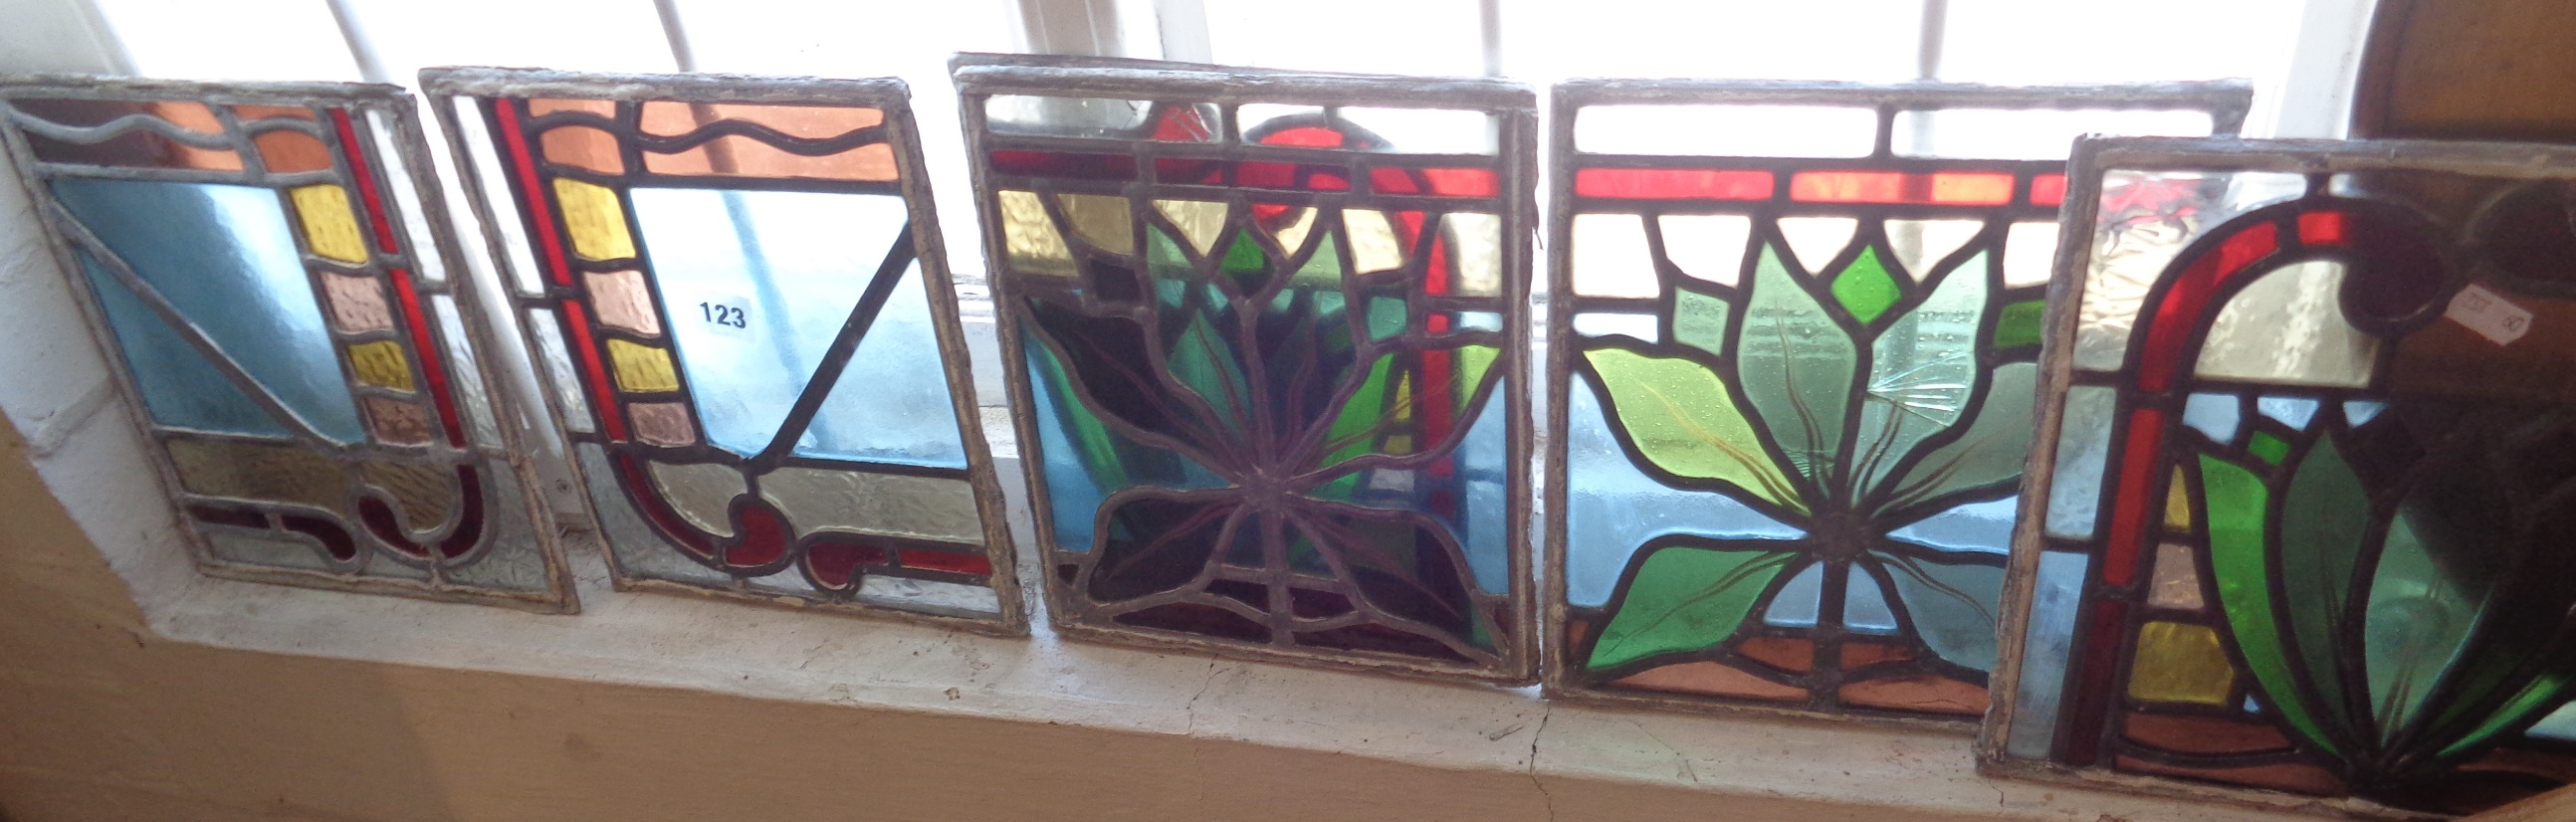 Lot 123 - Six panels of leaded stained glass